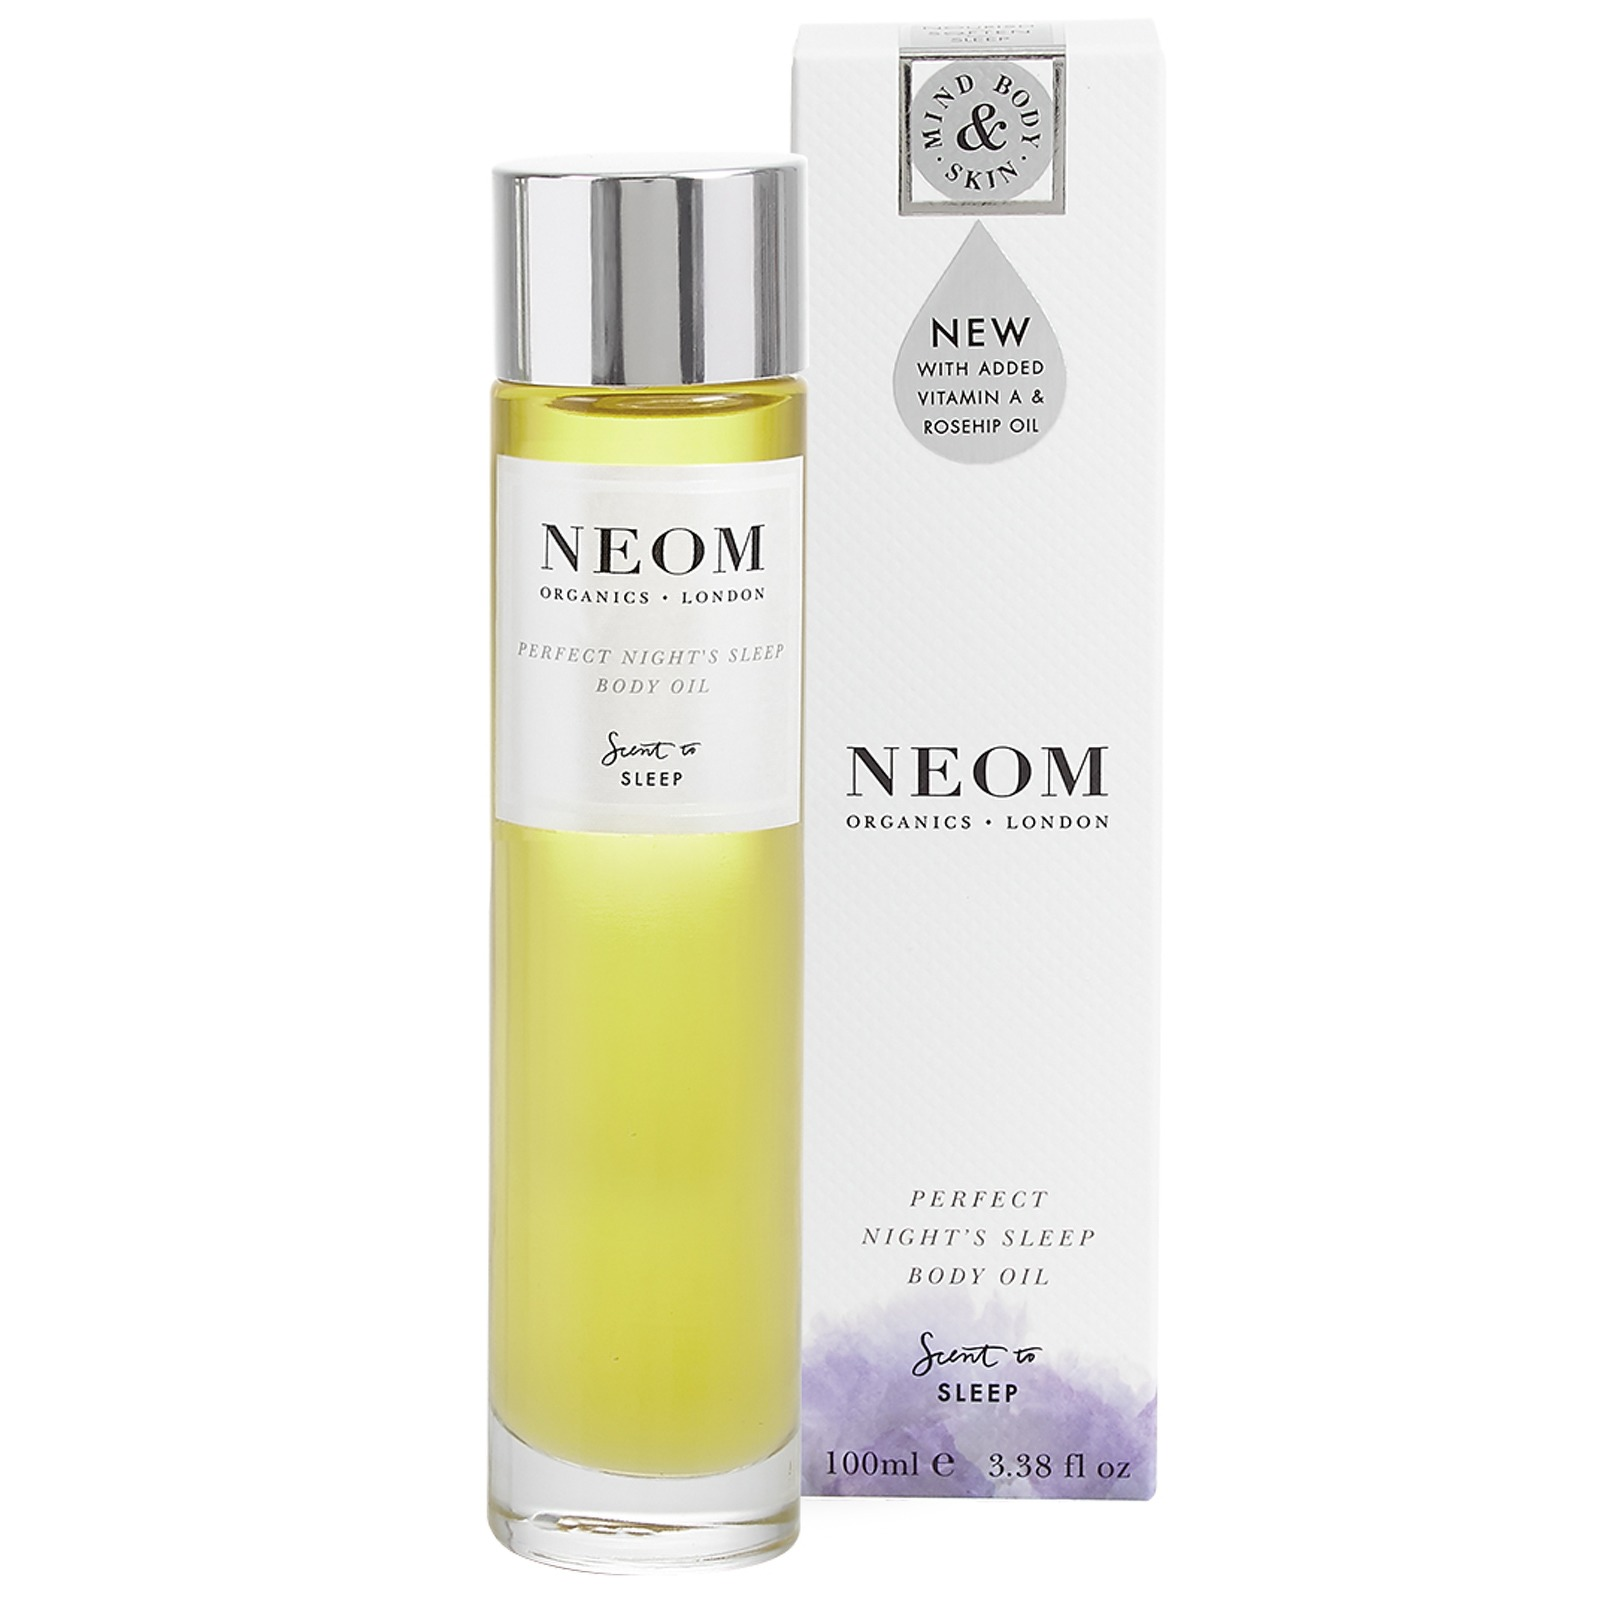 Neom Organics London Scent To Sleep Perfect Night's Sleep Body Oil 100ml